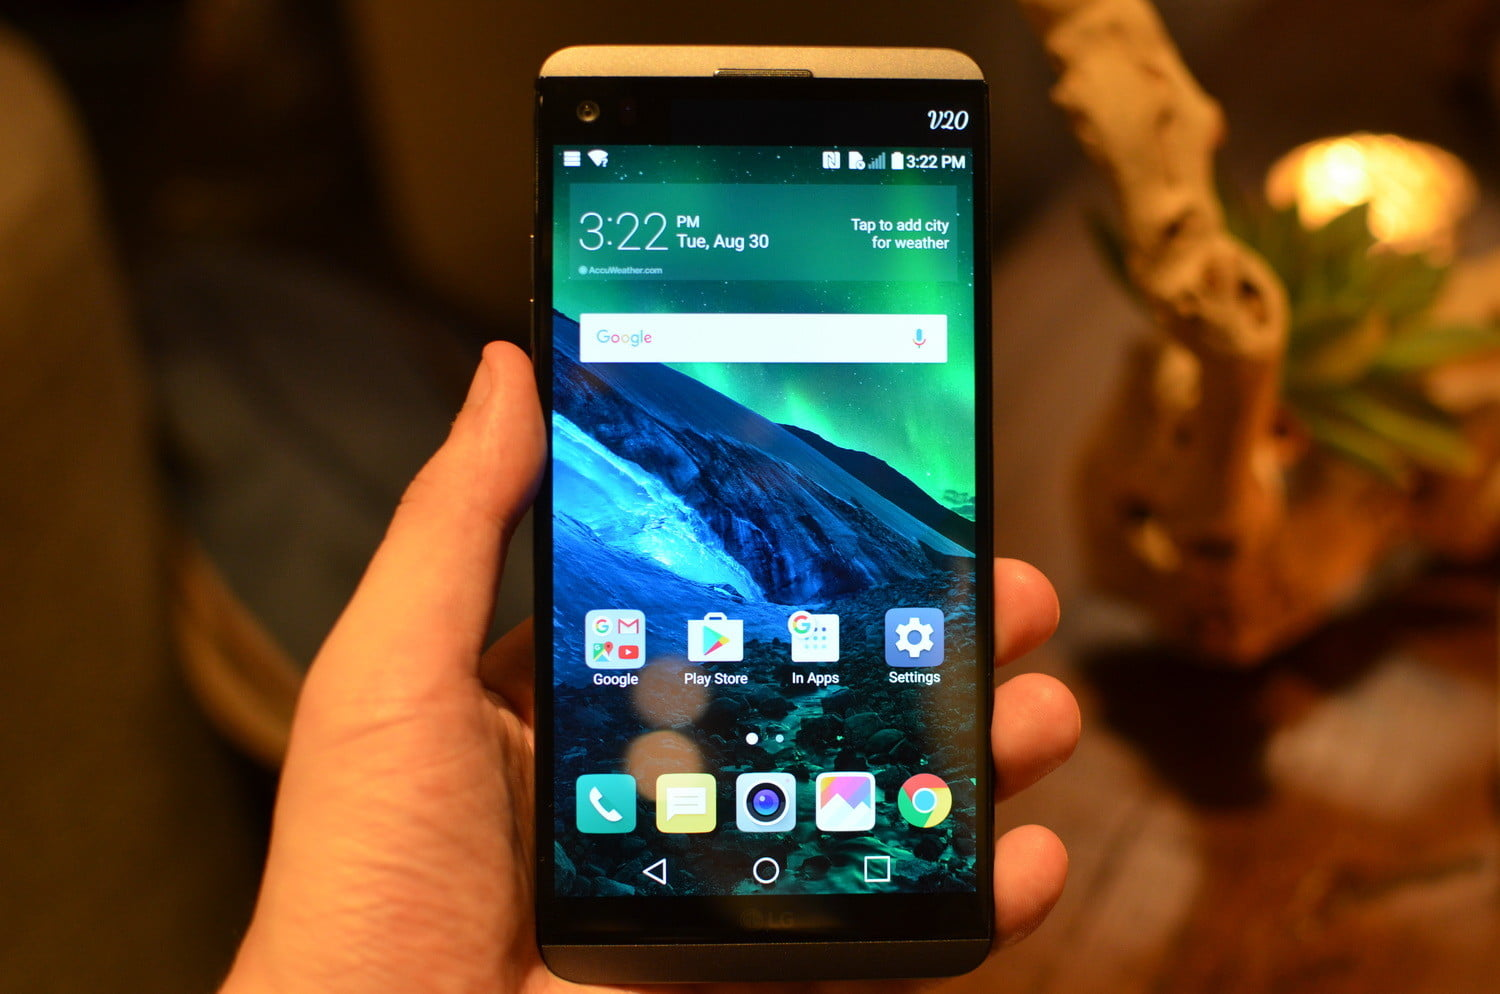 LG V20 Hands On: Android 7 0 Nougat-Powered Smartphone